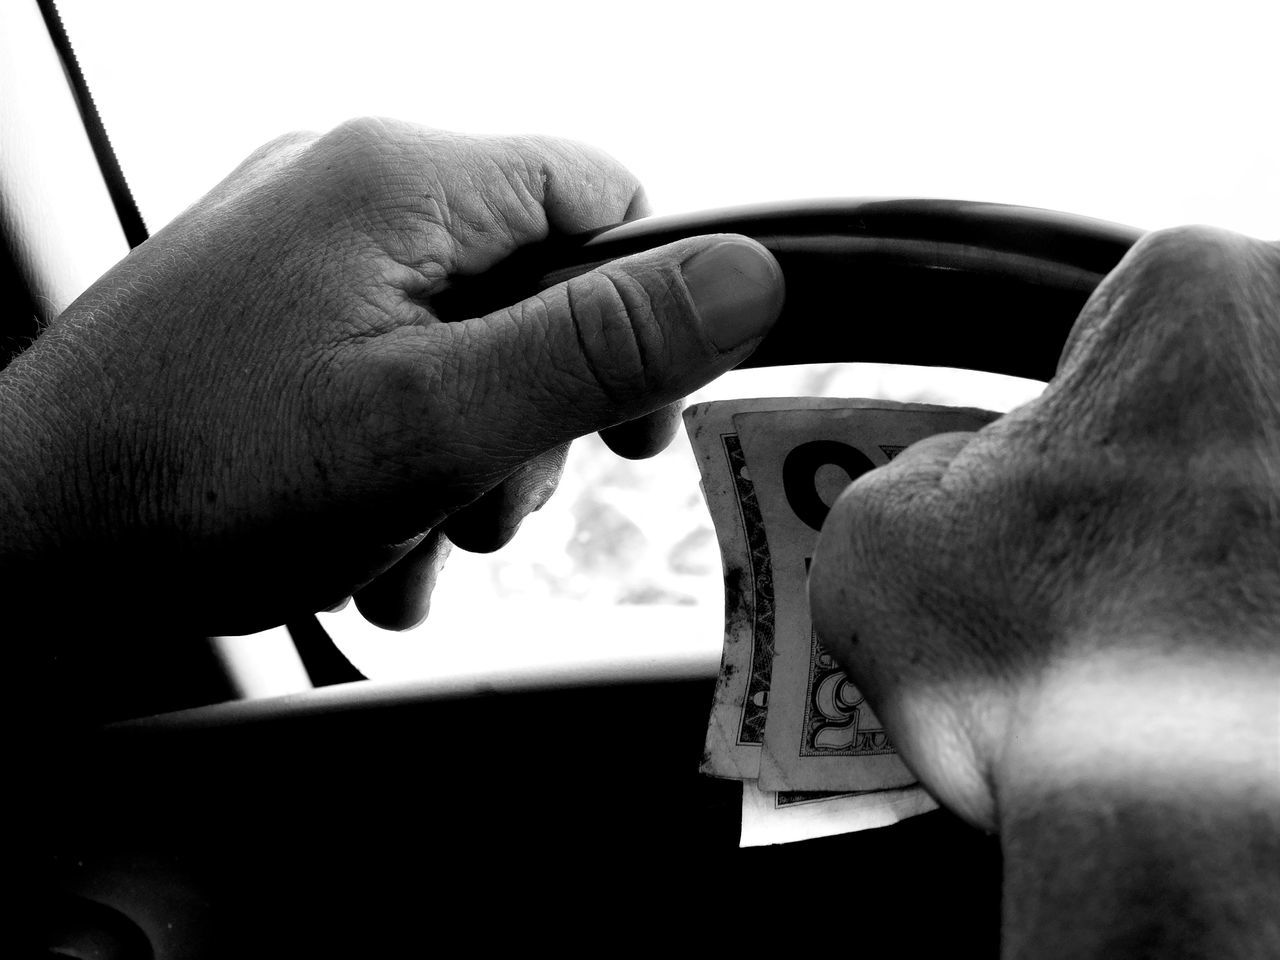 Monochrome Photography Blackandwhite Darkness And Light Money Dollars On The Road Driving Steering Wheel Hands Light And Shadow Life Is A Journey Notes From The Underground Random Acts Of Photography Lifestyles Florida Floridaphotographer Minimalism Untold Stories Maximum Closeness The Drive Cash